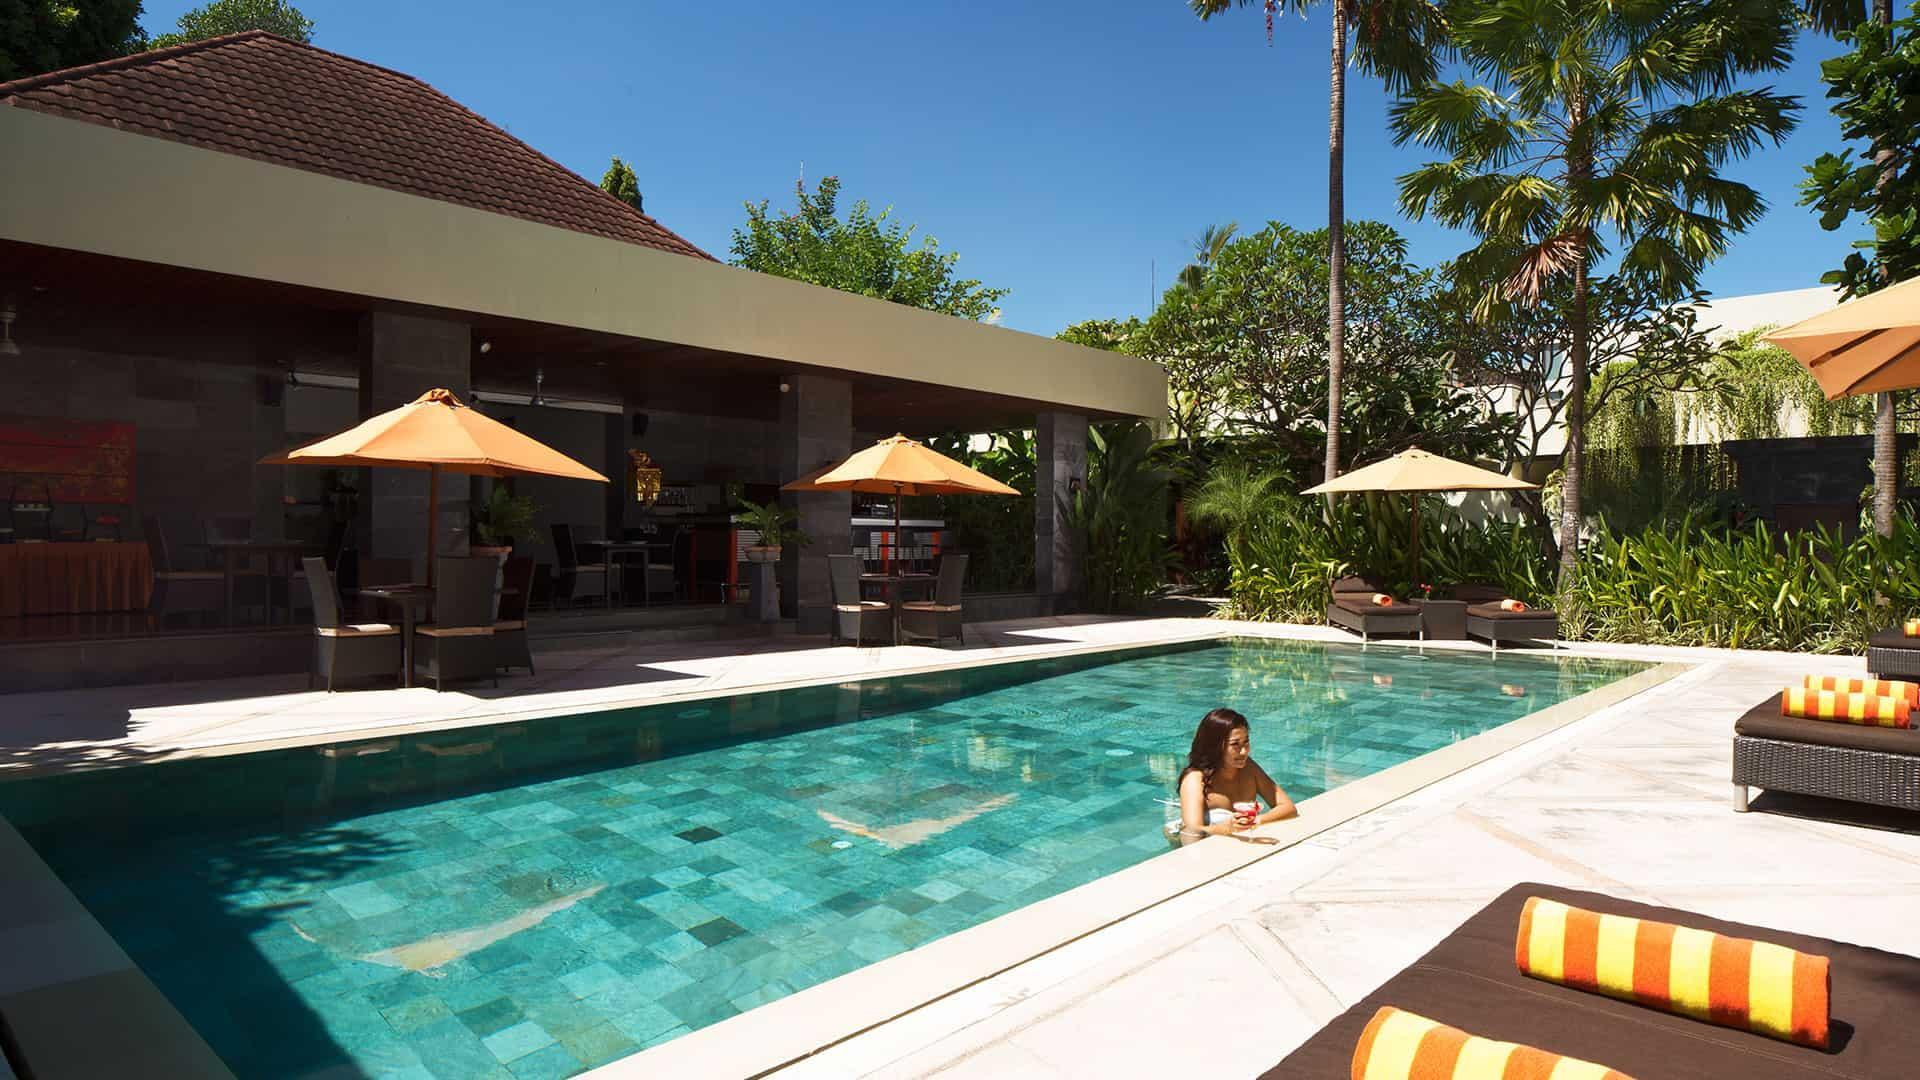 Deluxe 2 BR Villa with Private Pool-Breakfast SIB, Badung